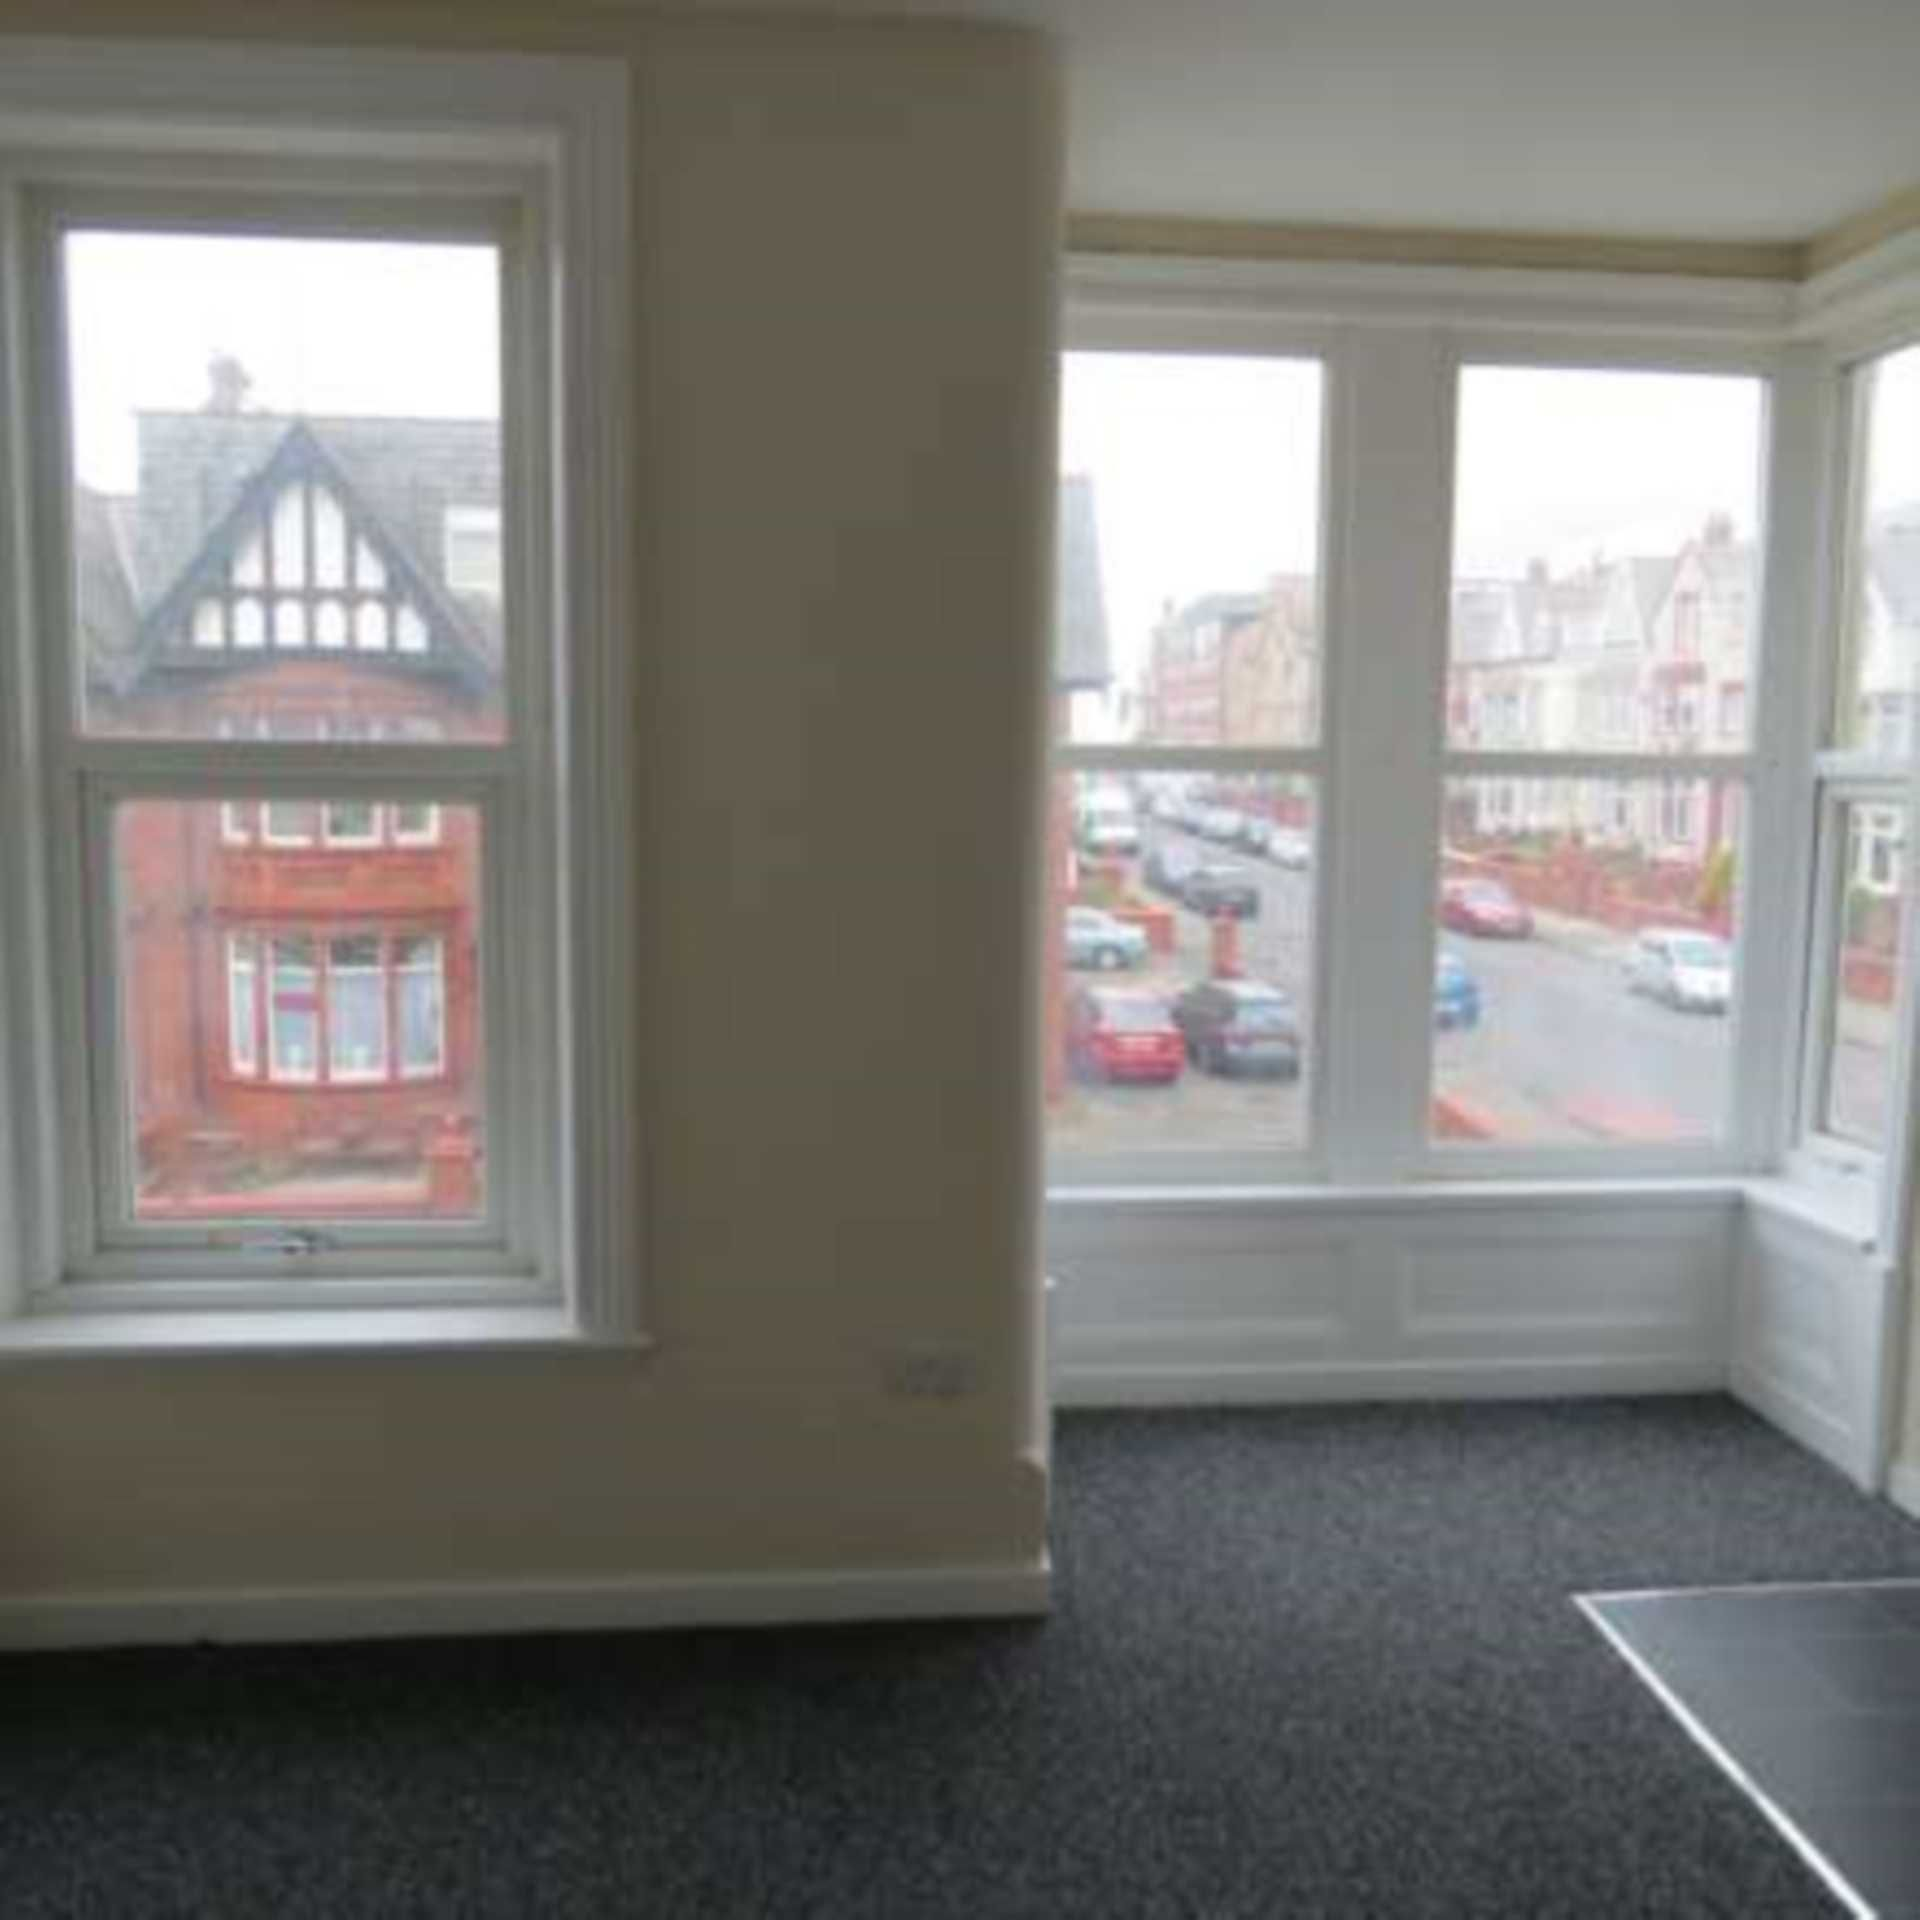 Single Bedrooms For Rent: 1 Bedroom Studio Flat To Rent, Holmfield Road, Blackpool